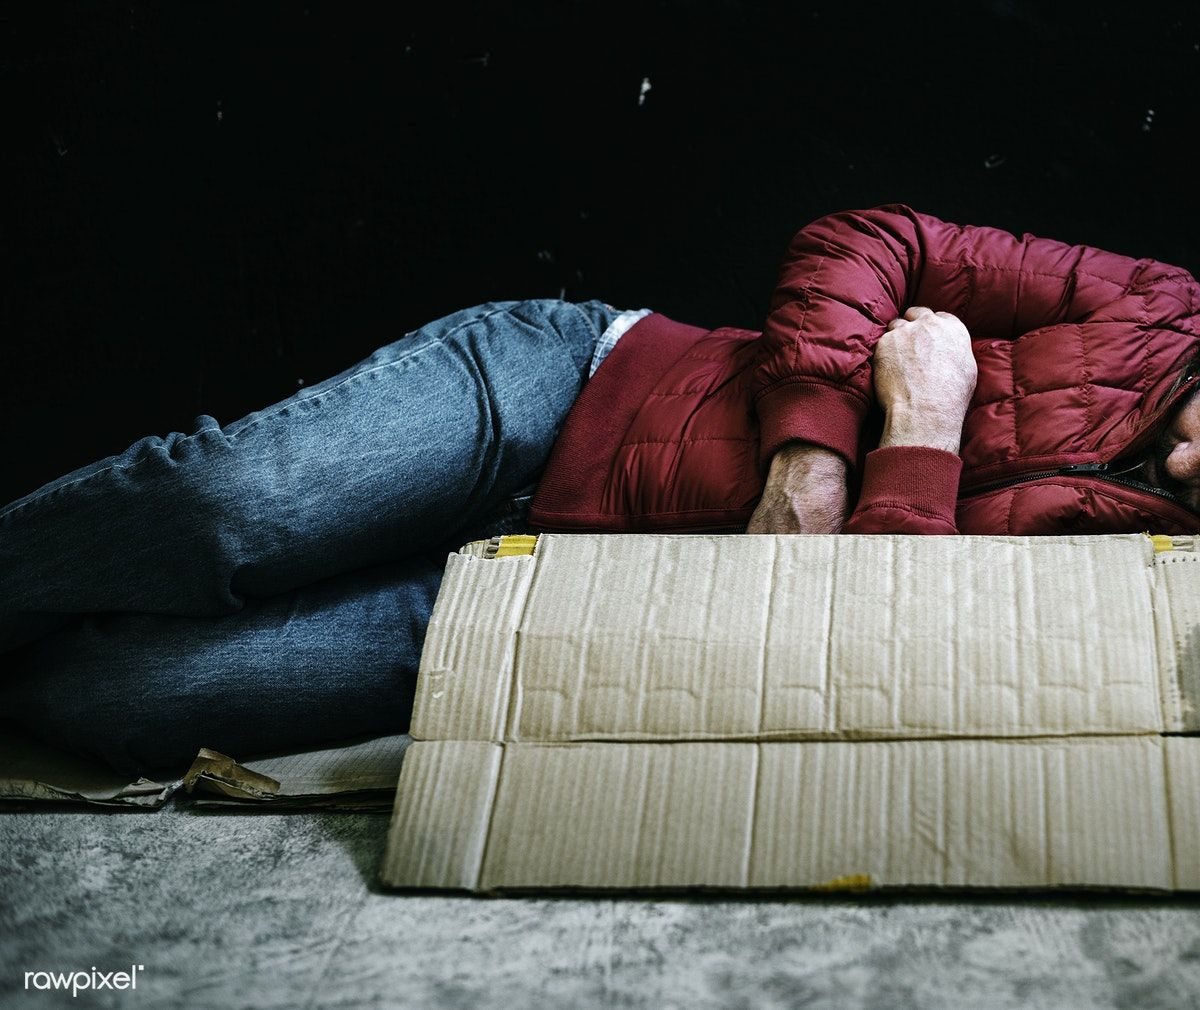 Download Premium Image Of Homeless Man Sleeping Out In The Cold 50405 Homeless Man Homeless People Homeless